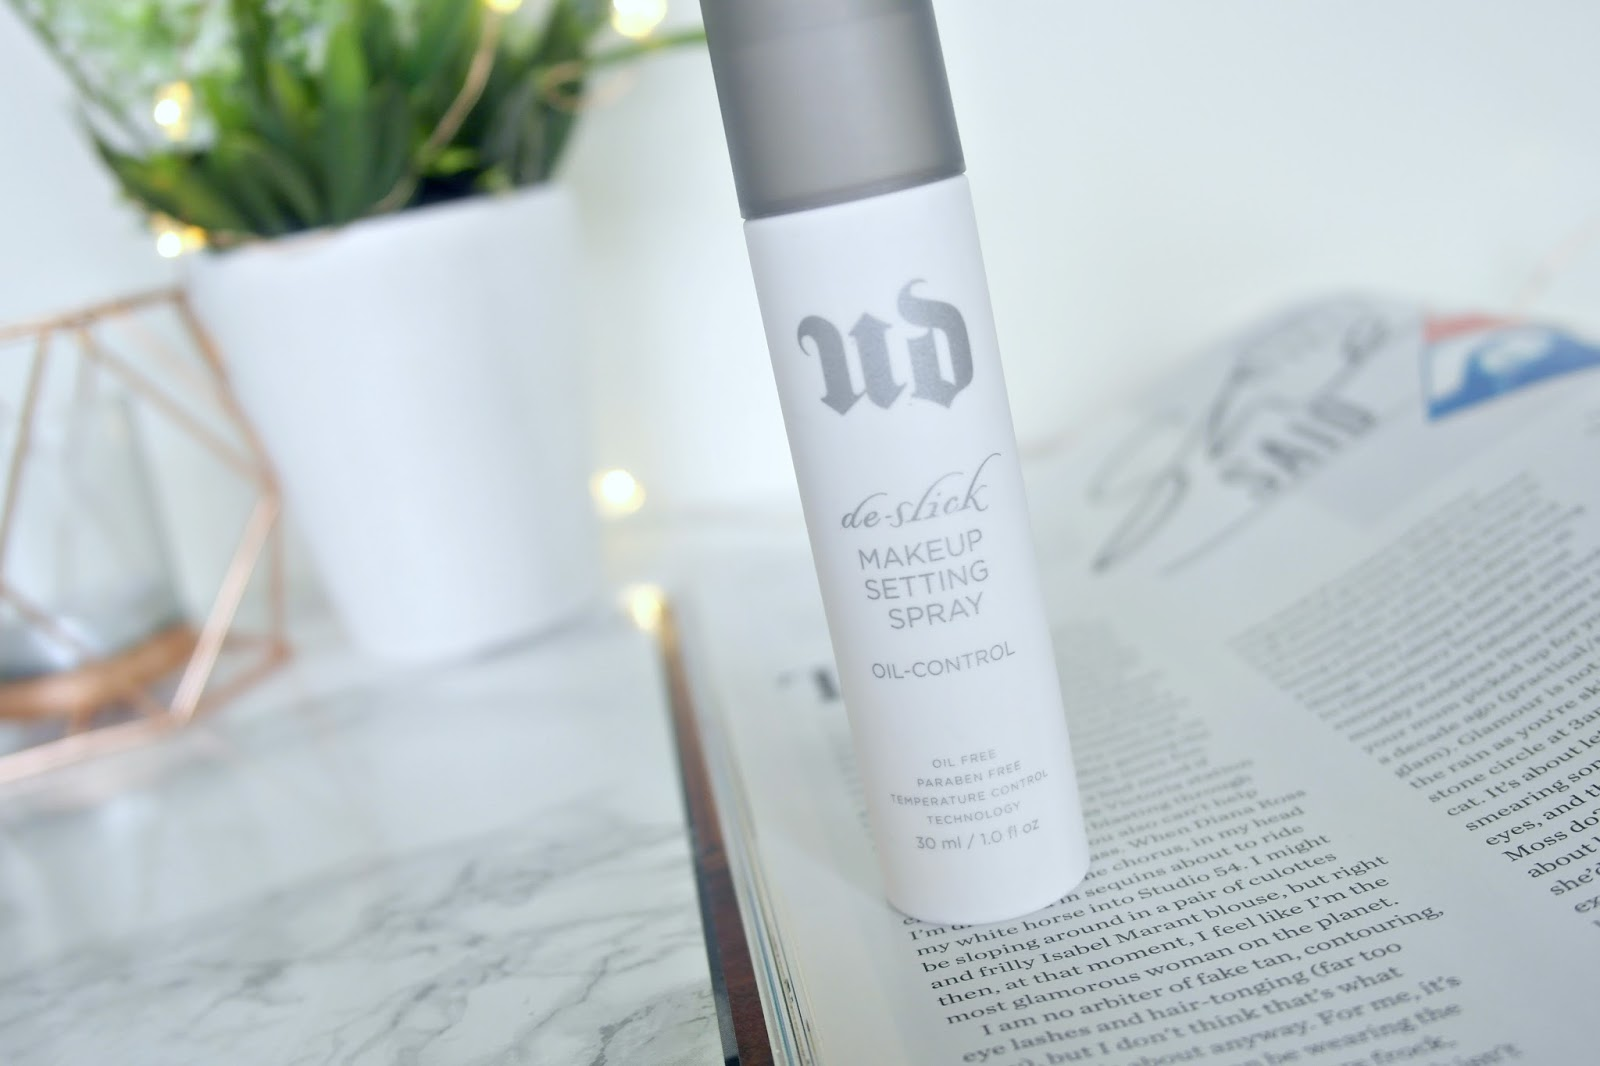 urban decay de-slick setting spray review